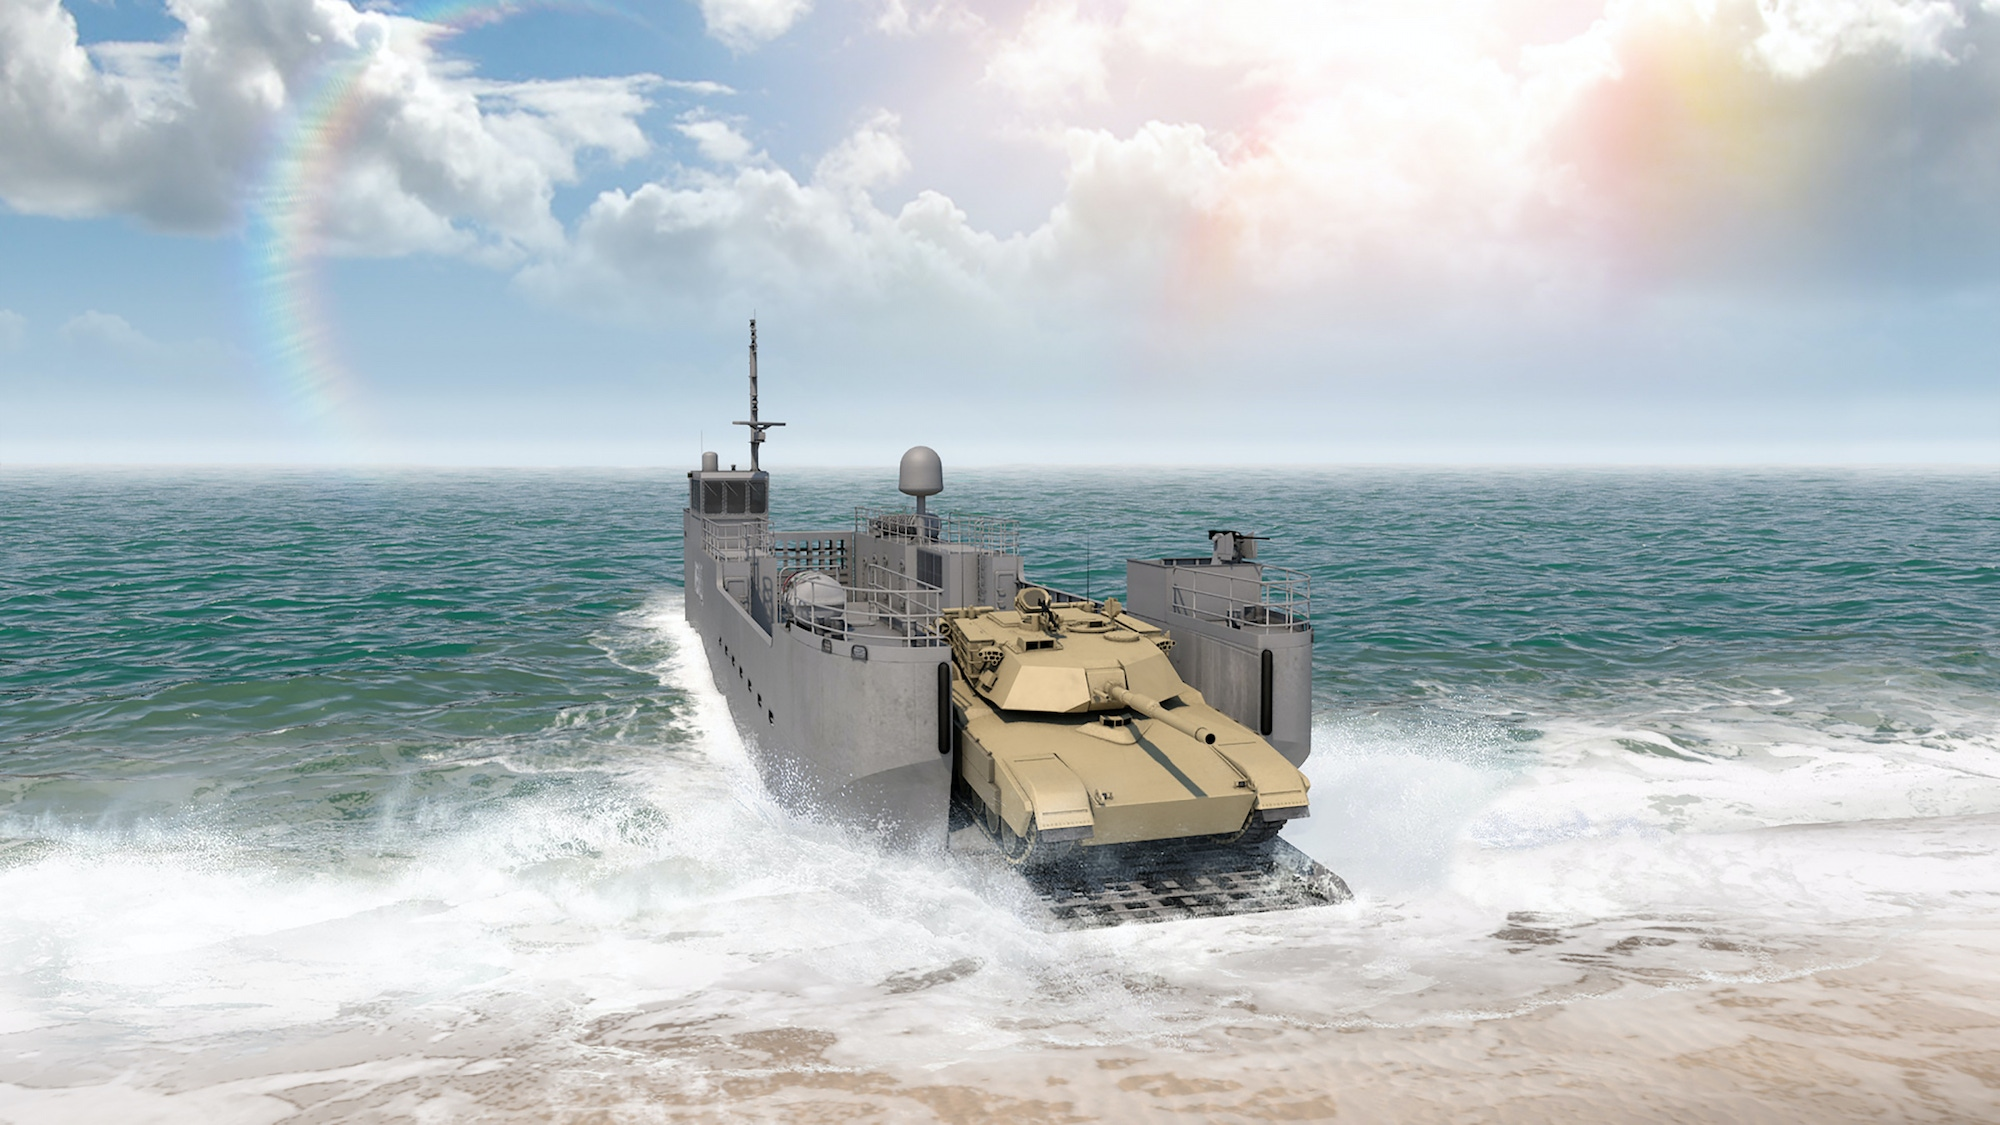 View of a tank disembarking from a Maneuver Support Vessel (Light) on a beach